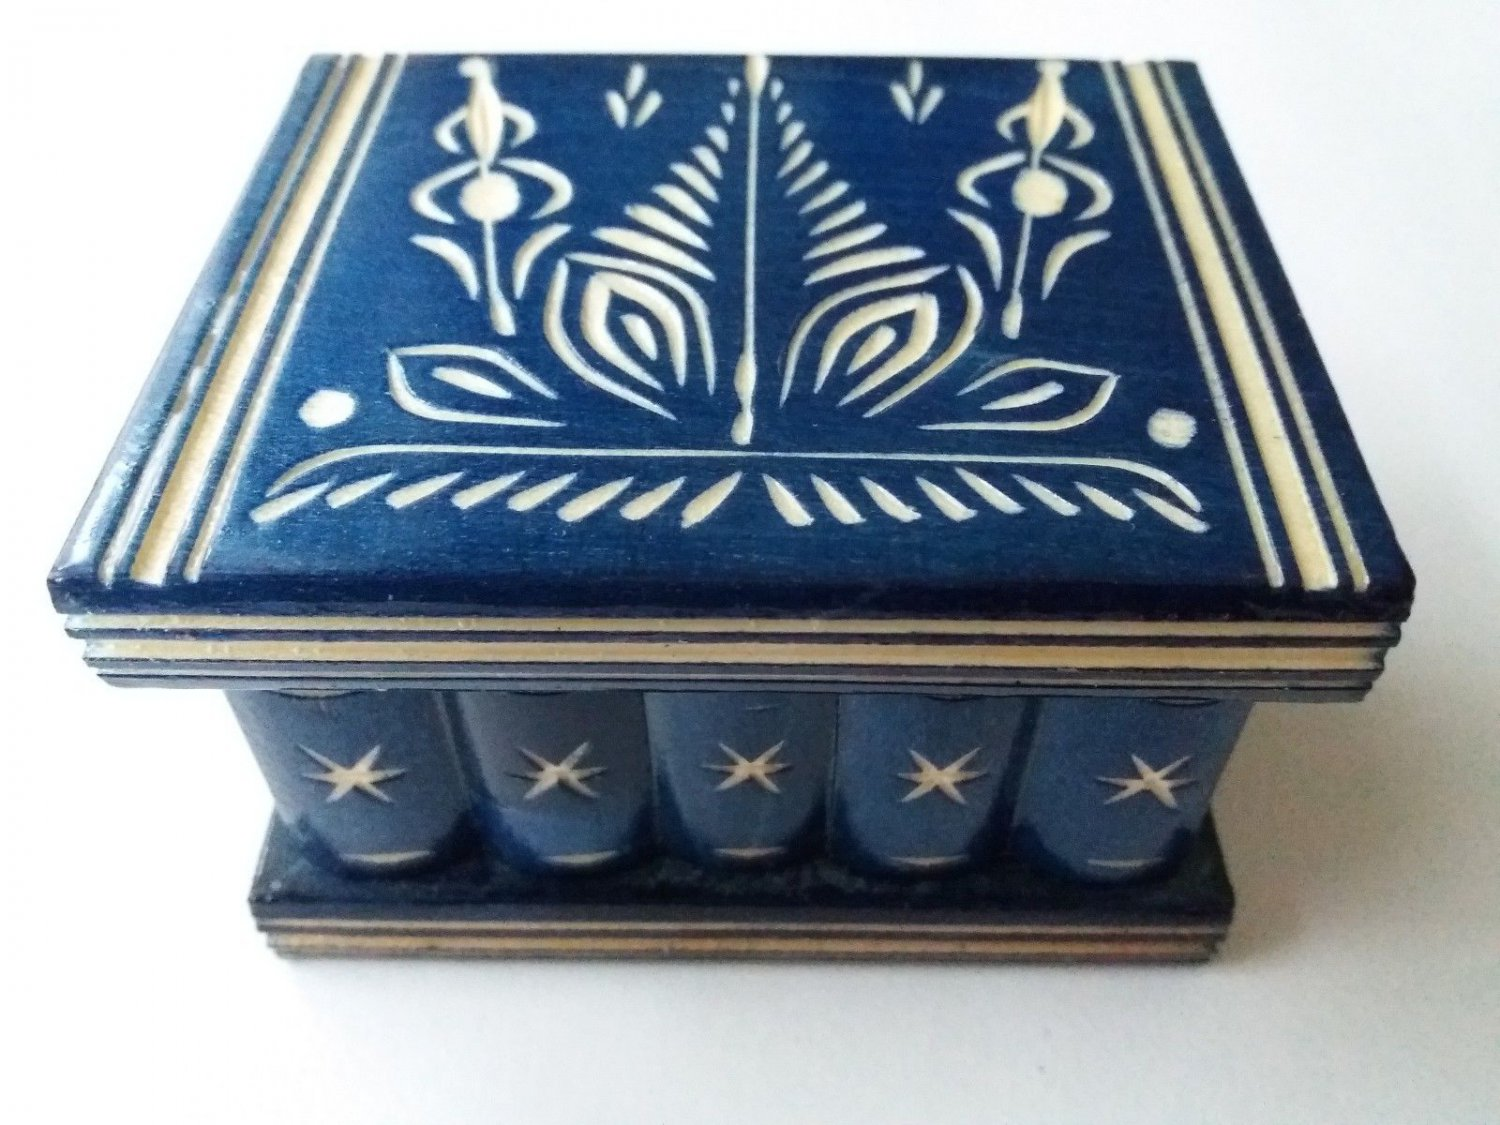 New cute handmade blue wooden secret magic puzzle jewelry ring holder box gift